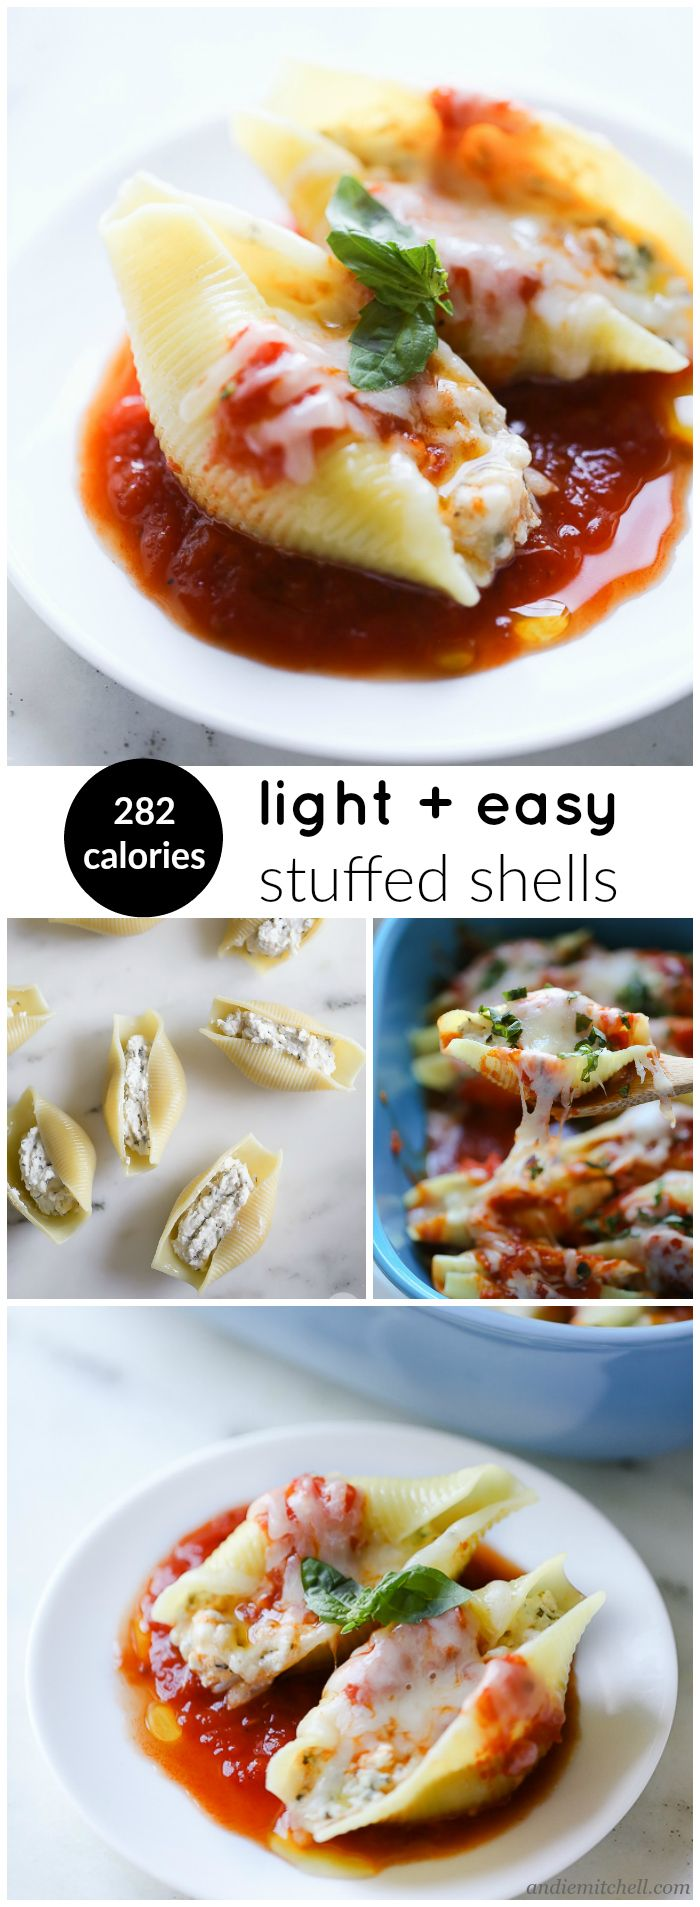 Easy Stuffed Shells Recipe! 282 calories for 2 deliciously cheesy and rich shells! These have a secret ingredient that keeps them light, healthy, and creamy!